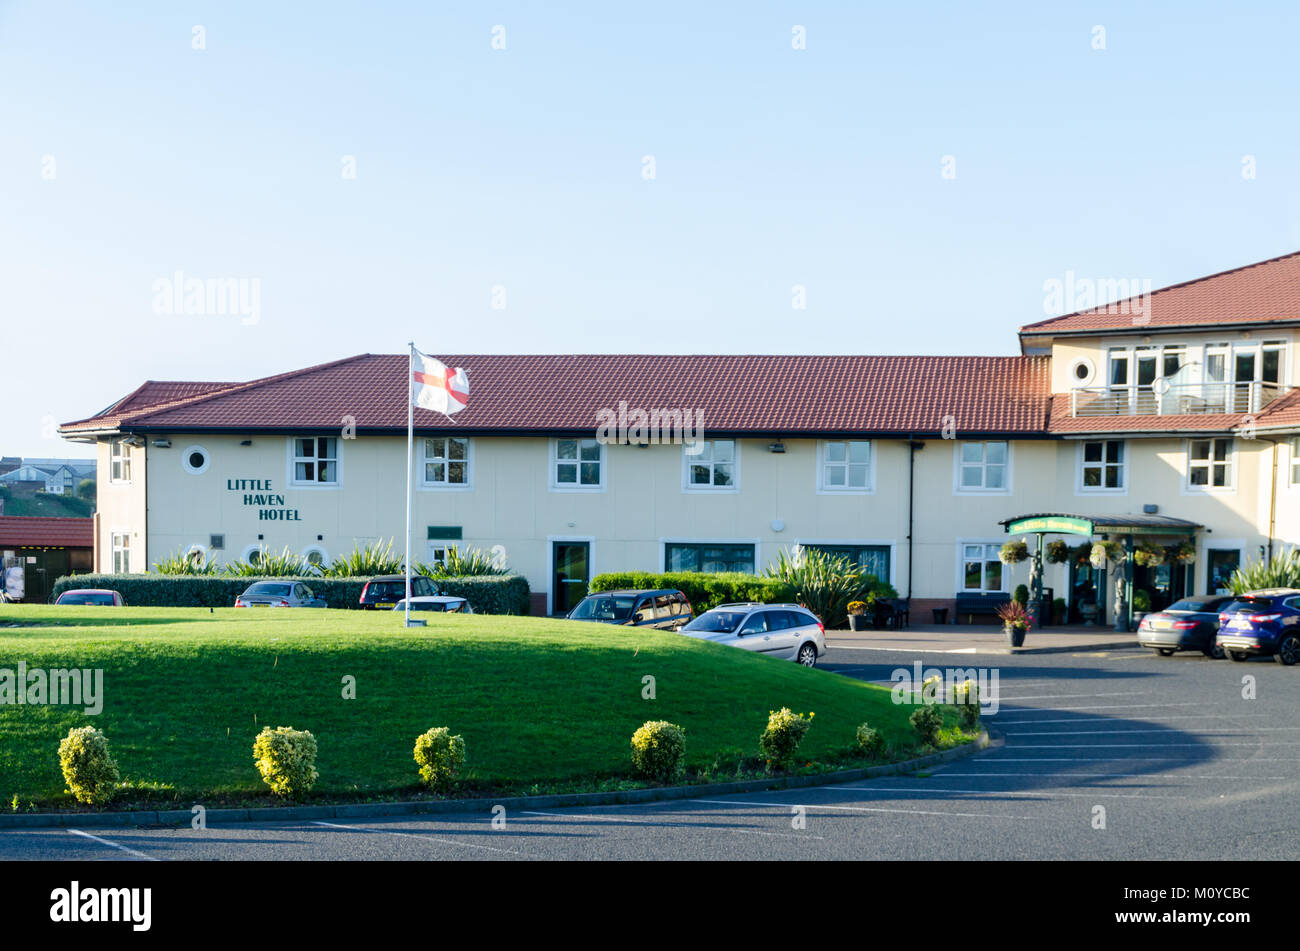 The 'Little Haven Hotel', River Drive, South Shields - Stock Image